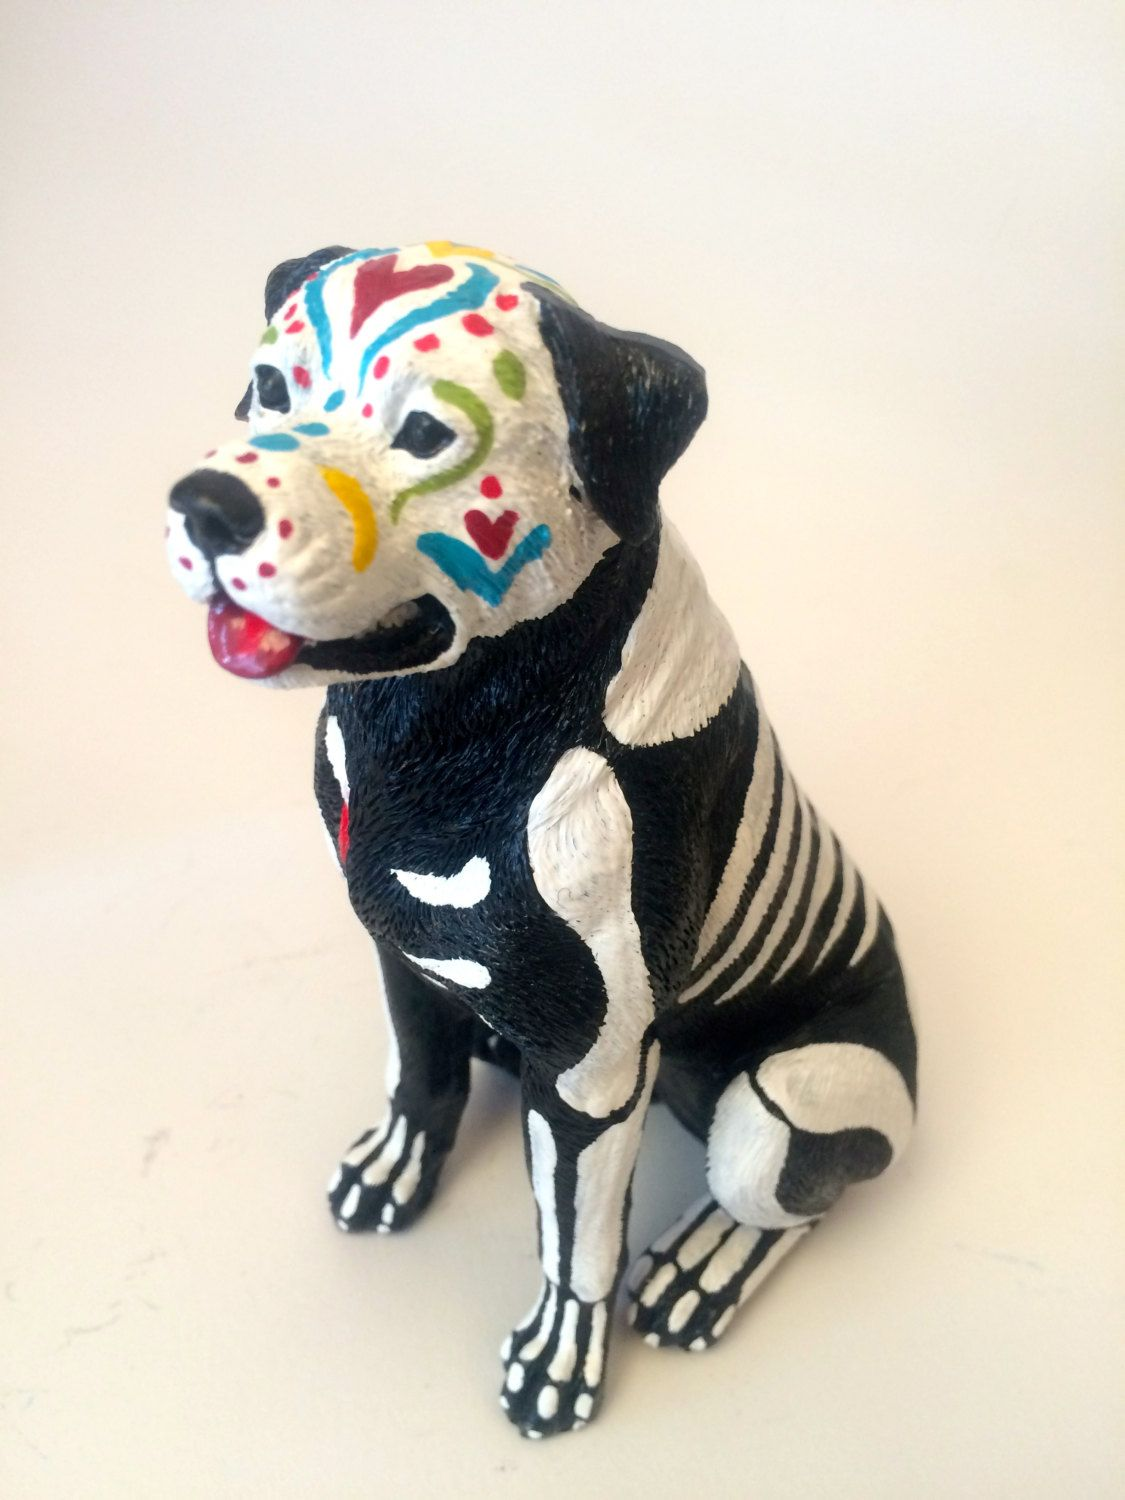 Day of the dead great dane dog sugar skull pet memorial dia de los day of the dead rottweiler dog sugar skull pet memorial dia de los muertos sculpture dog dailygadgetfo Choice Image